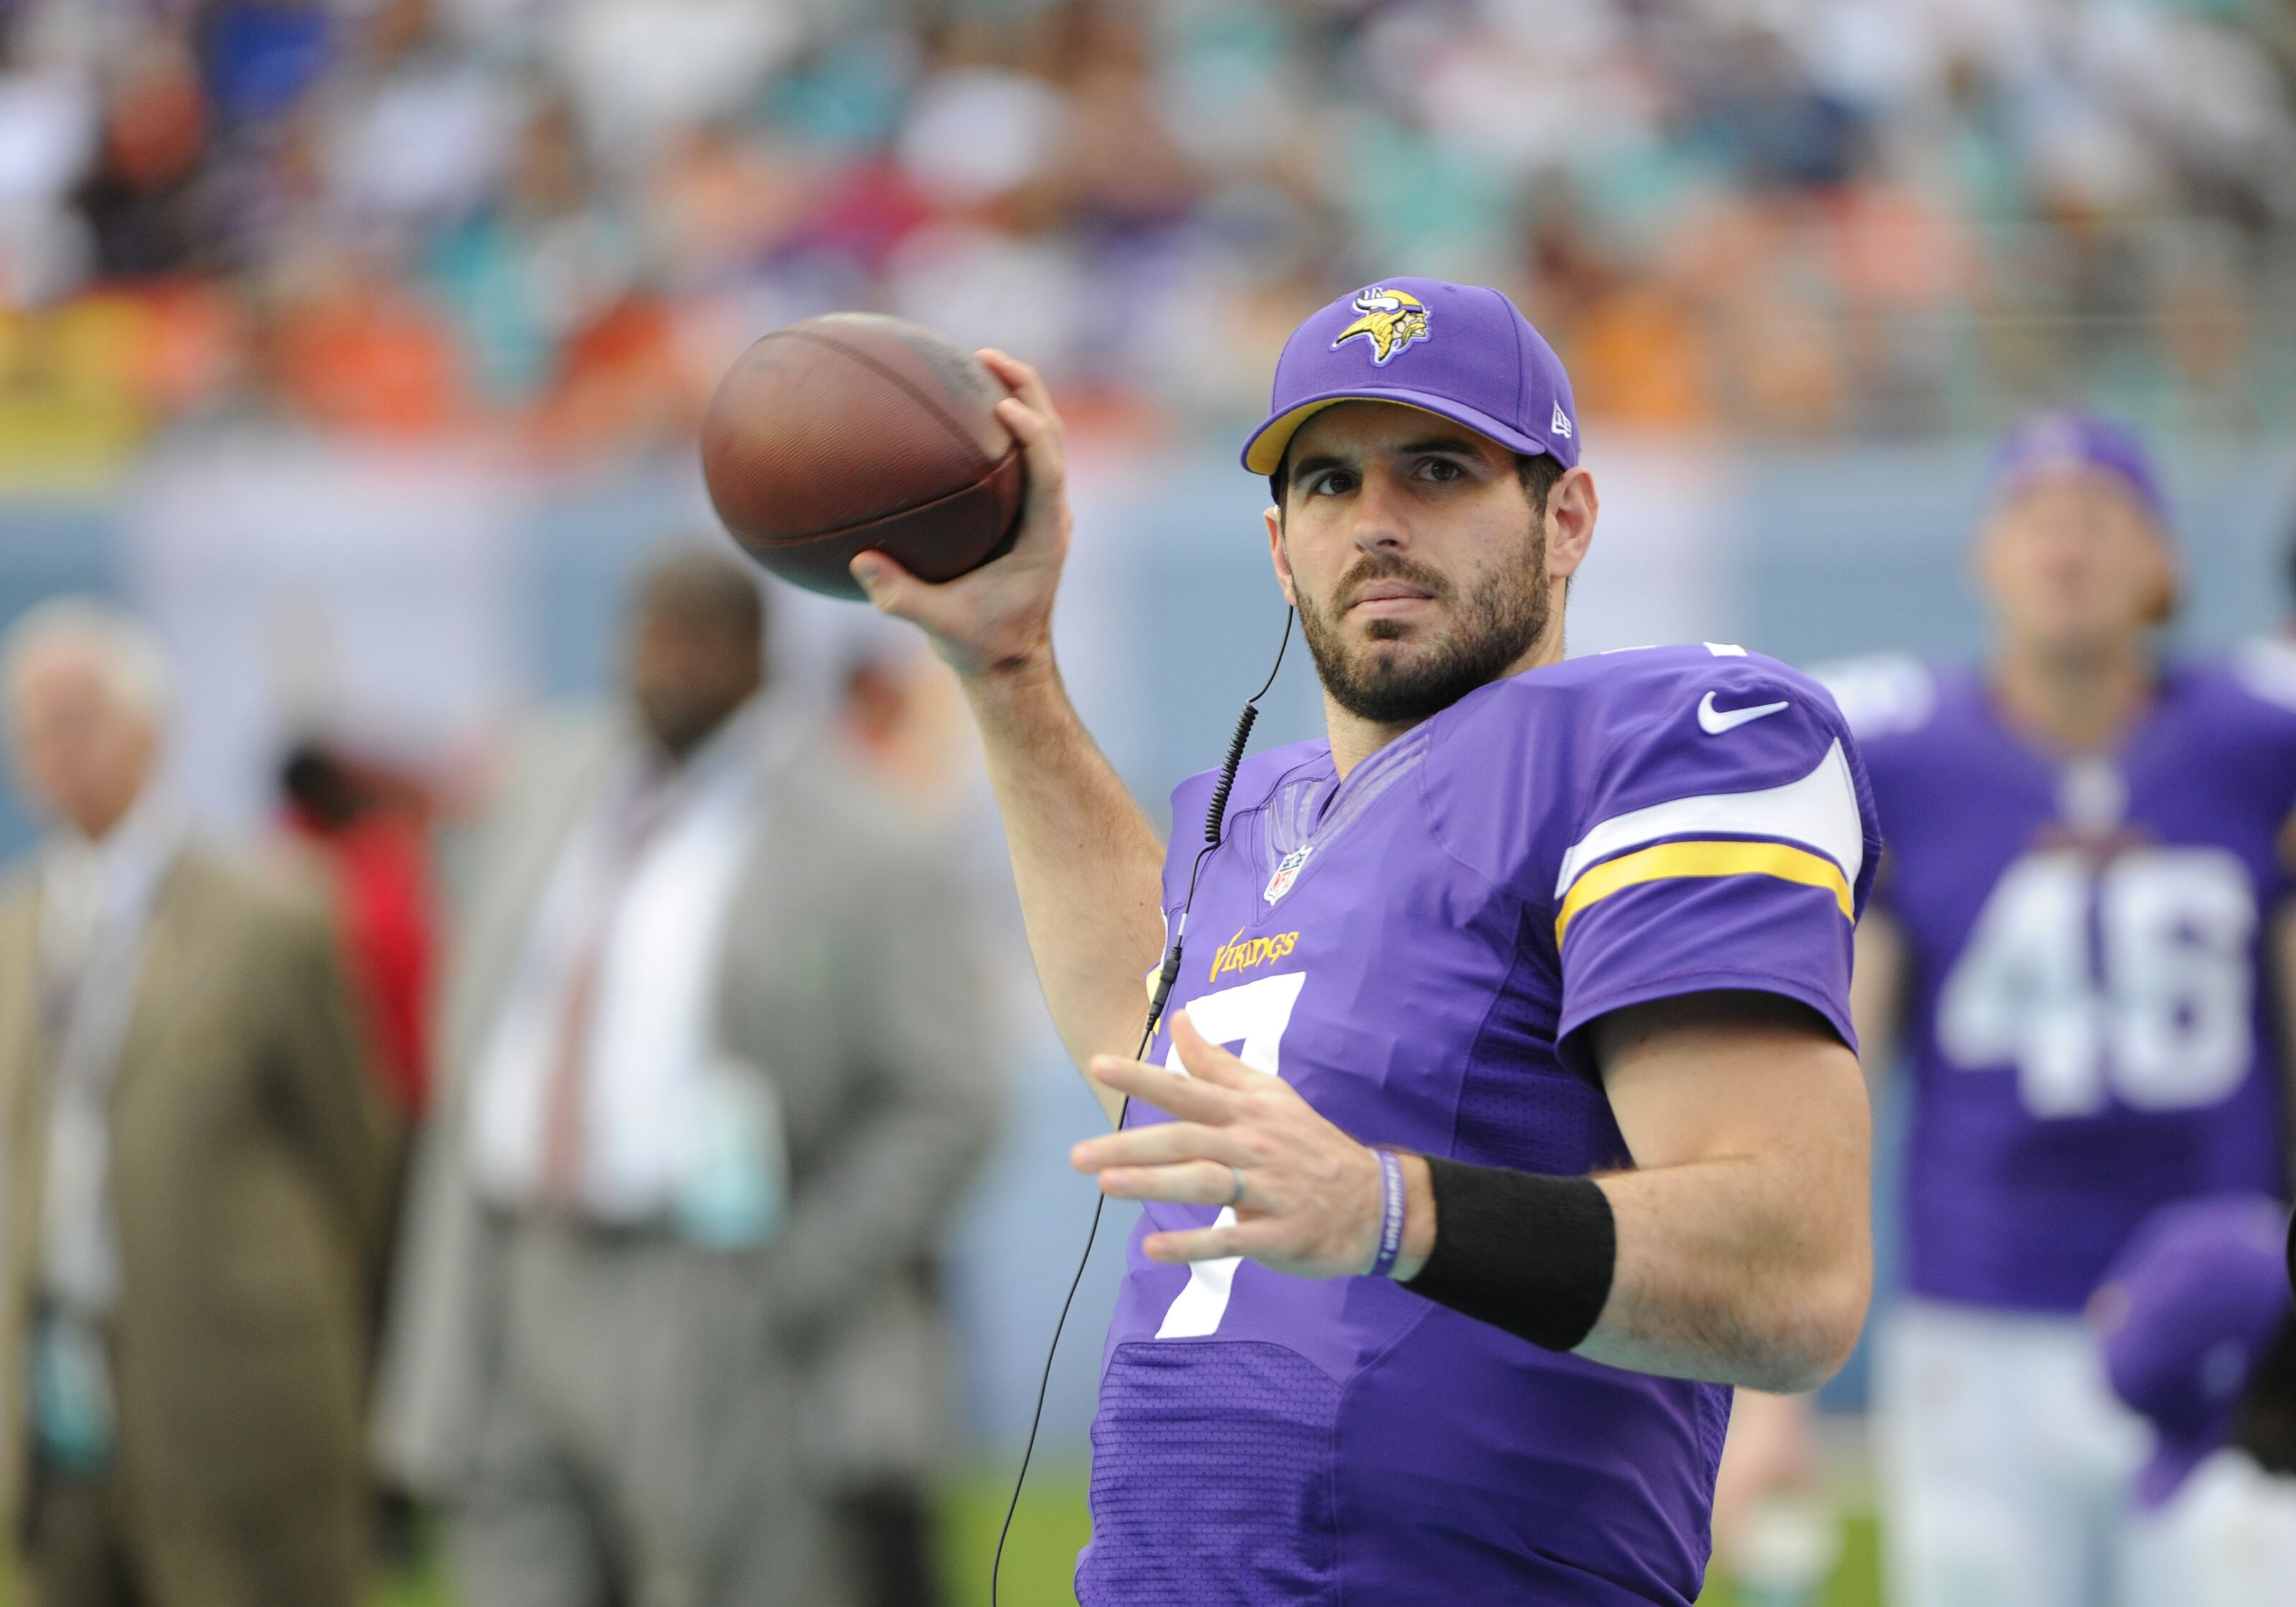 Christian Ponder named one of 2011's biggest draft busts